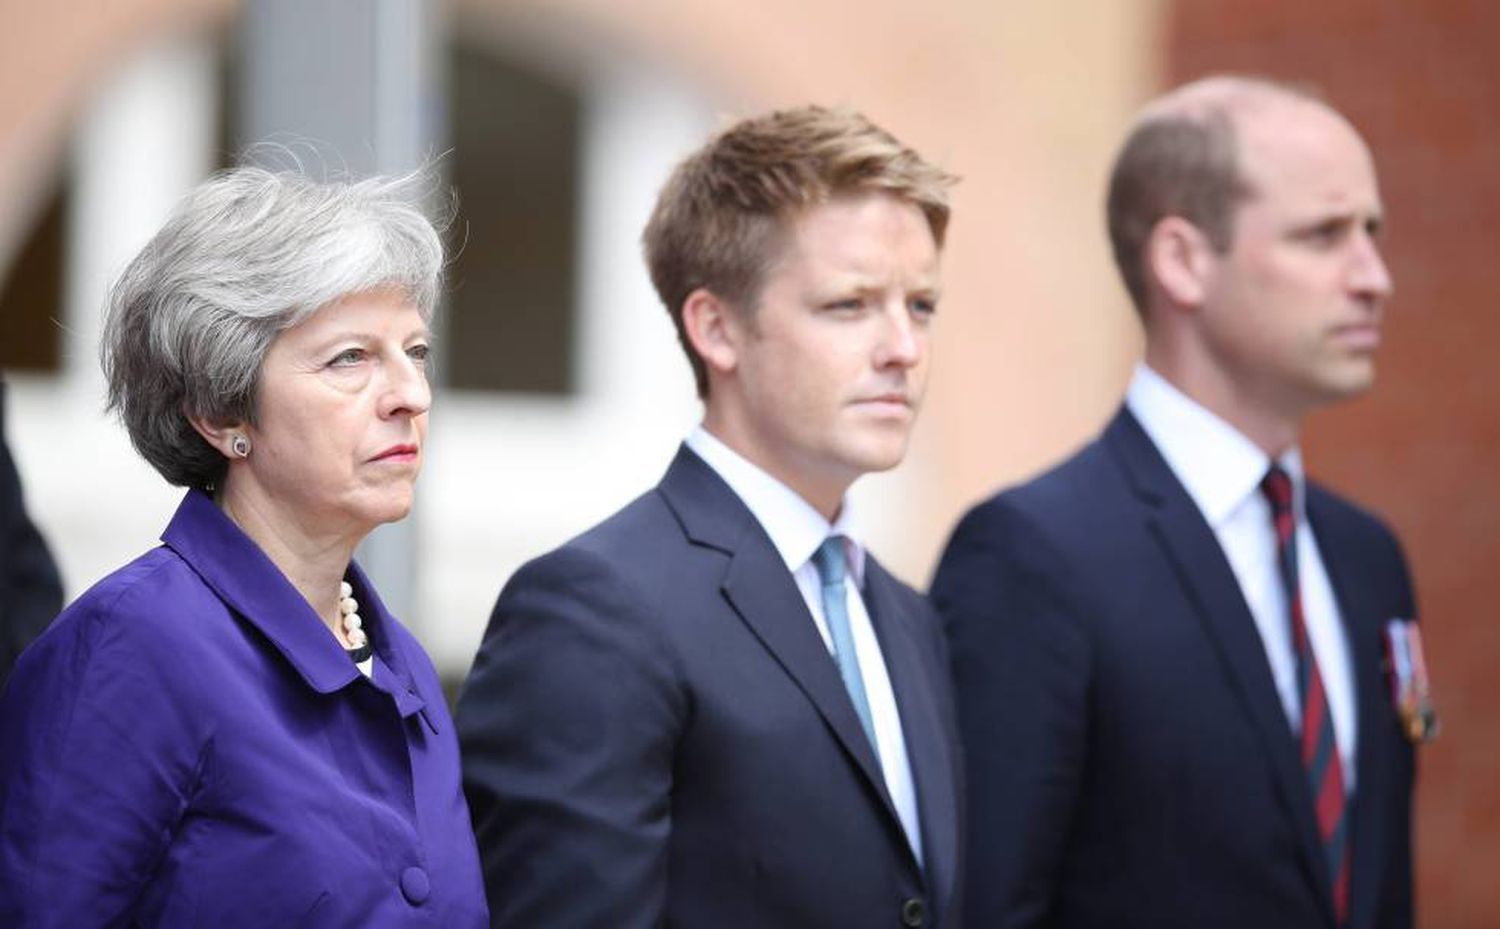 Theresa May, duc de Westminster et Guillaume d'Angleterre, en 2018.